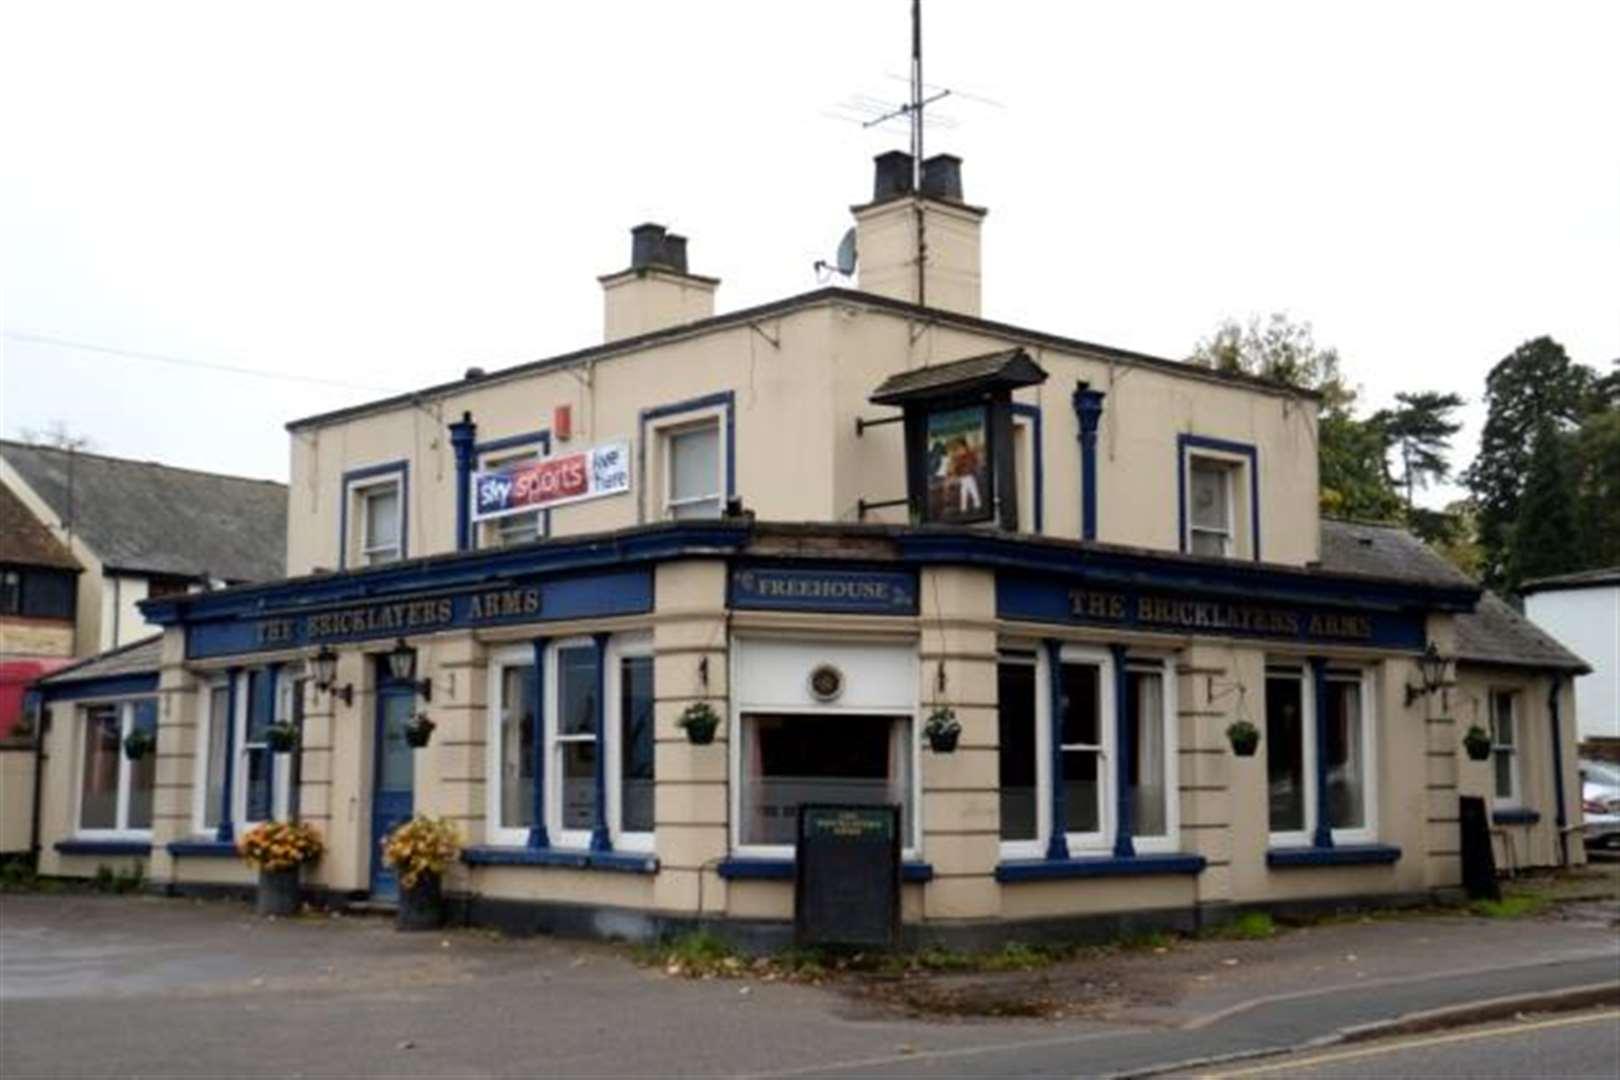 Flats developer submits revised plans to demolish Stortford's Bricklayers Arms pub